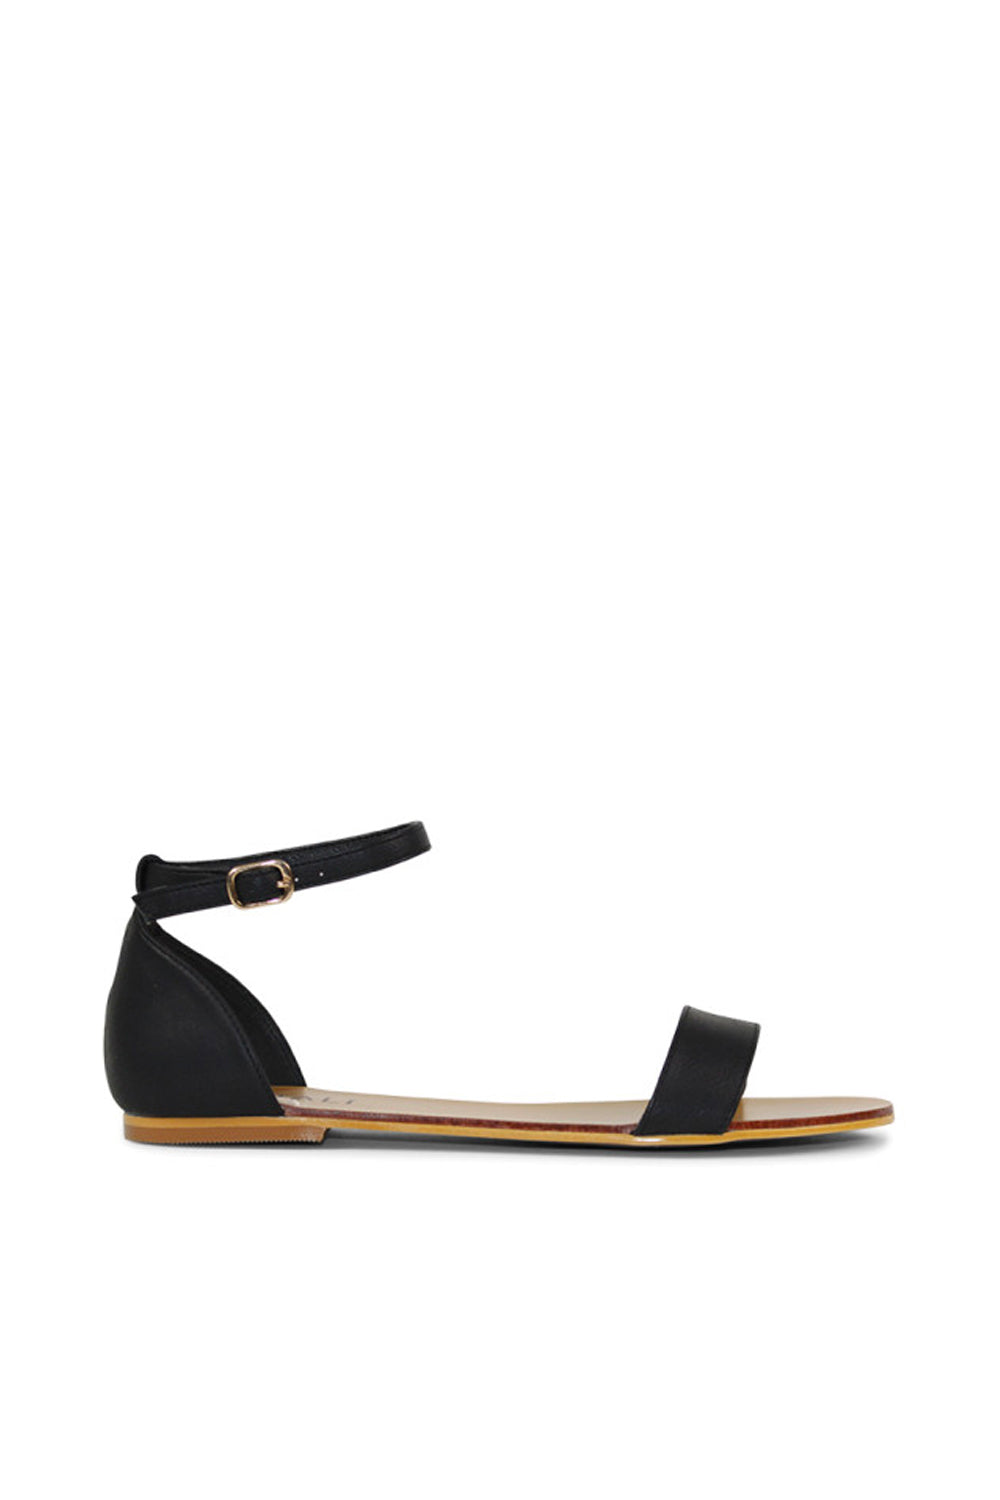 Bailey Sandal by Verali in Black